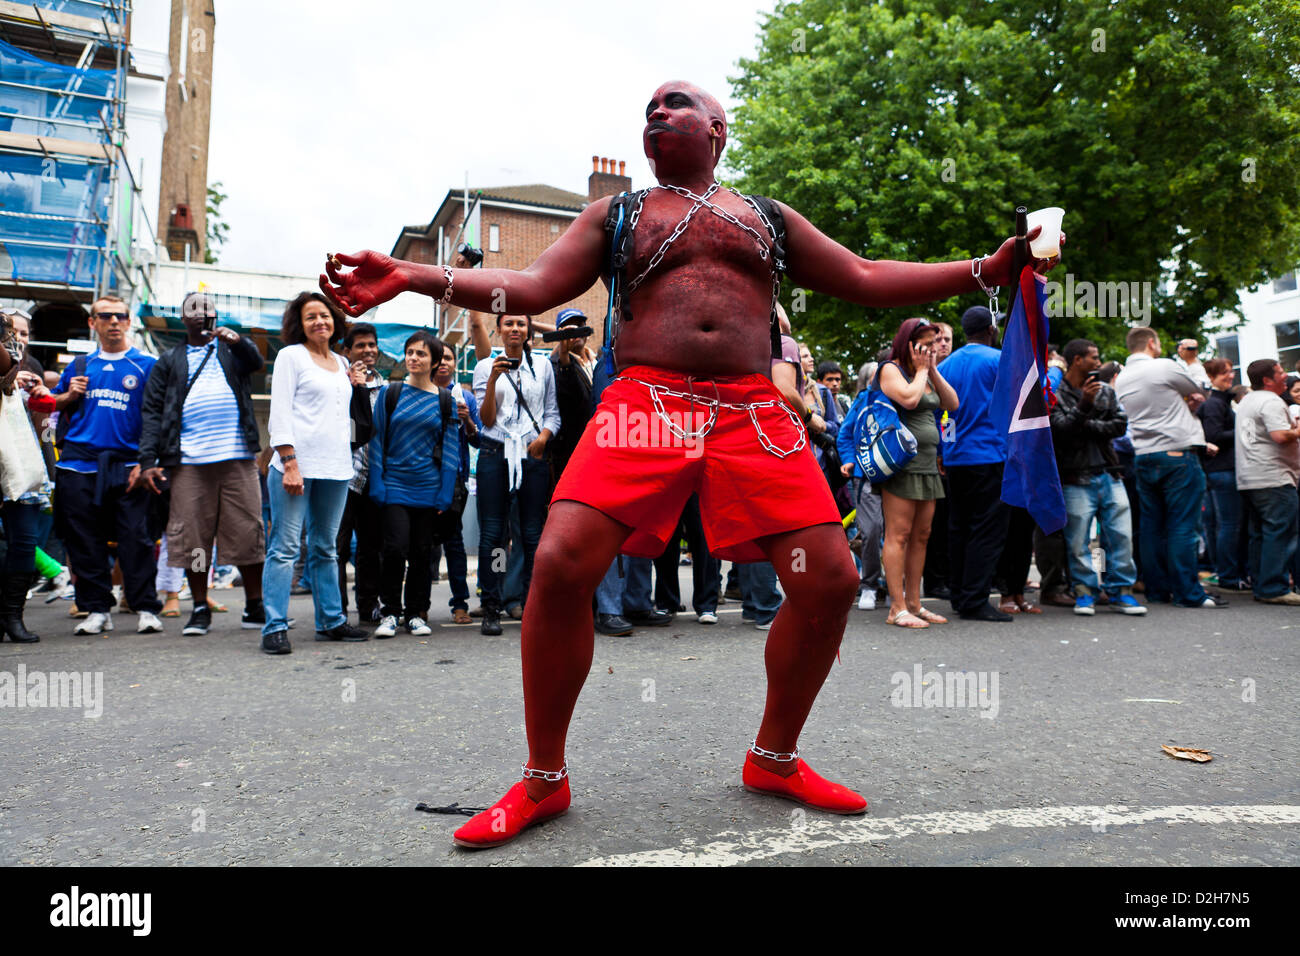 Performer at Notting Hill Carnival 2011 - Stock Image